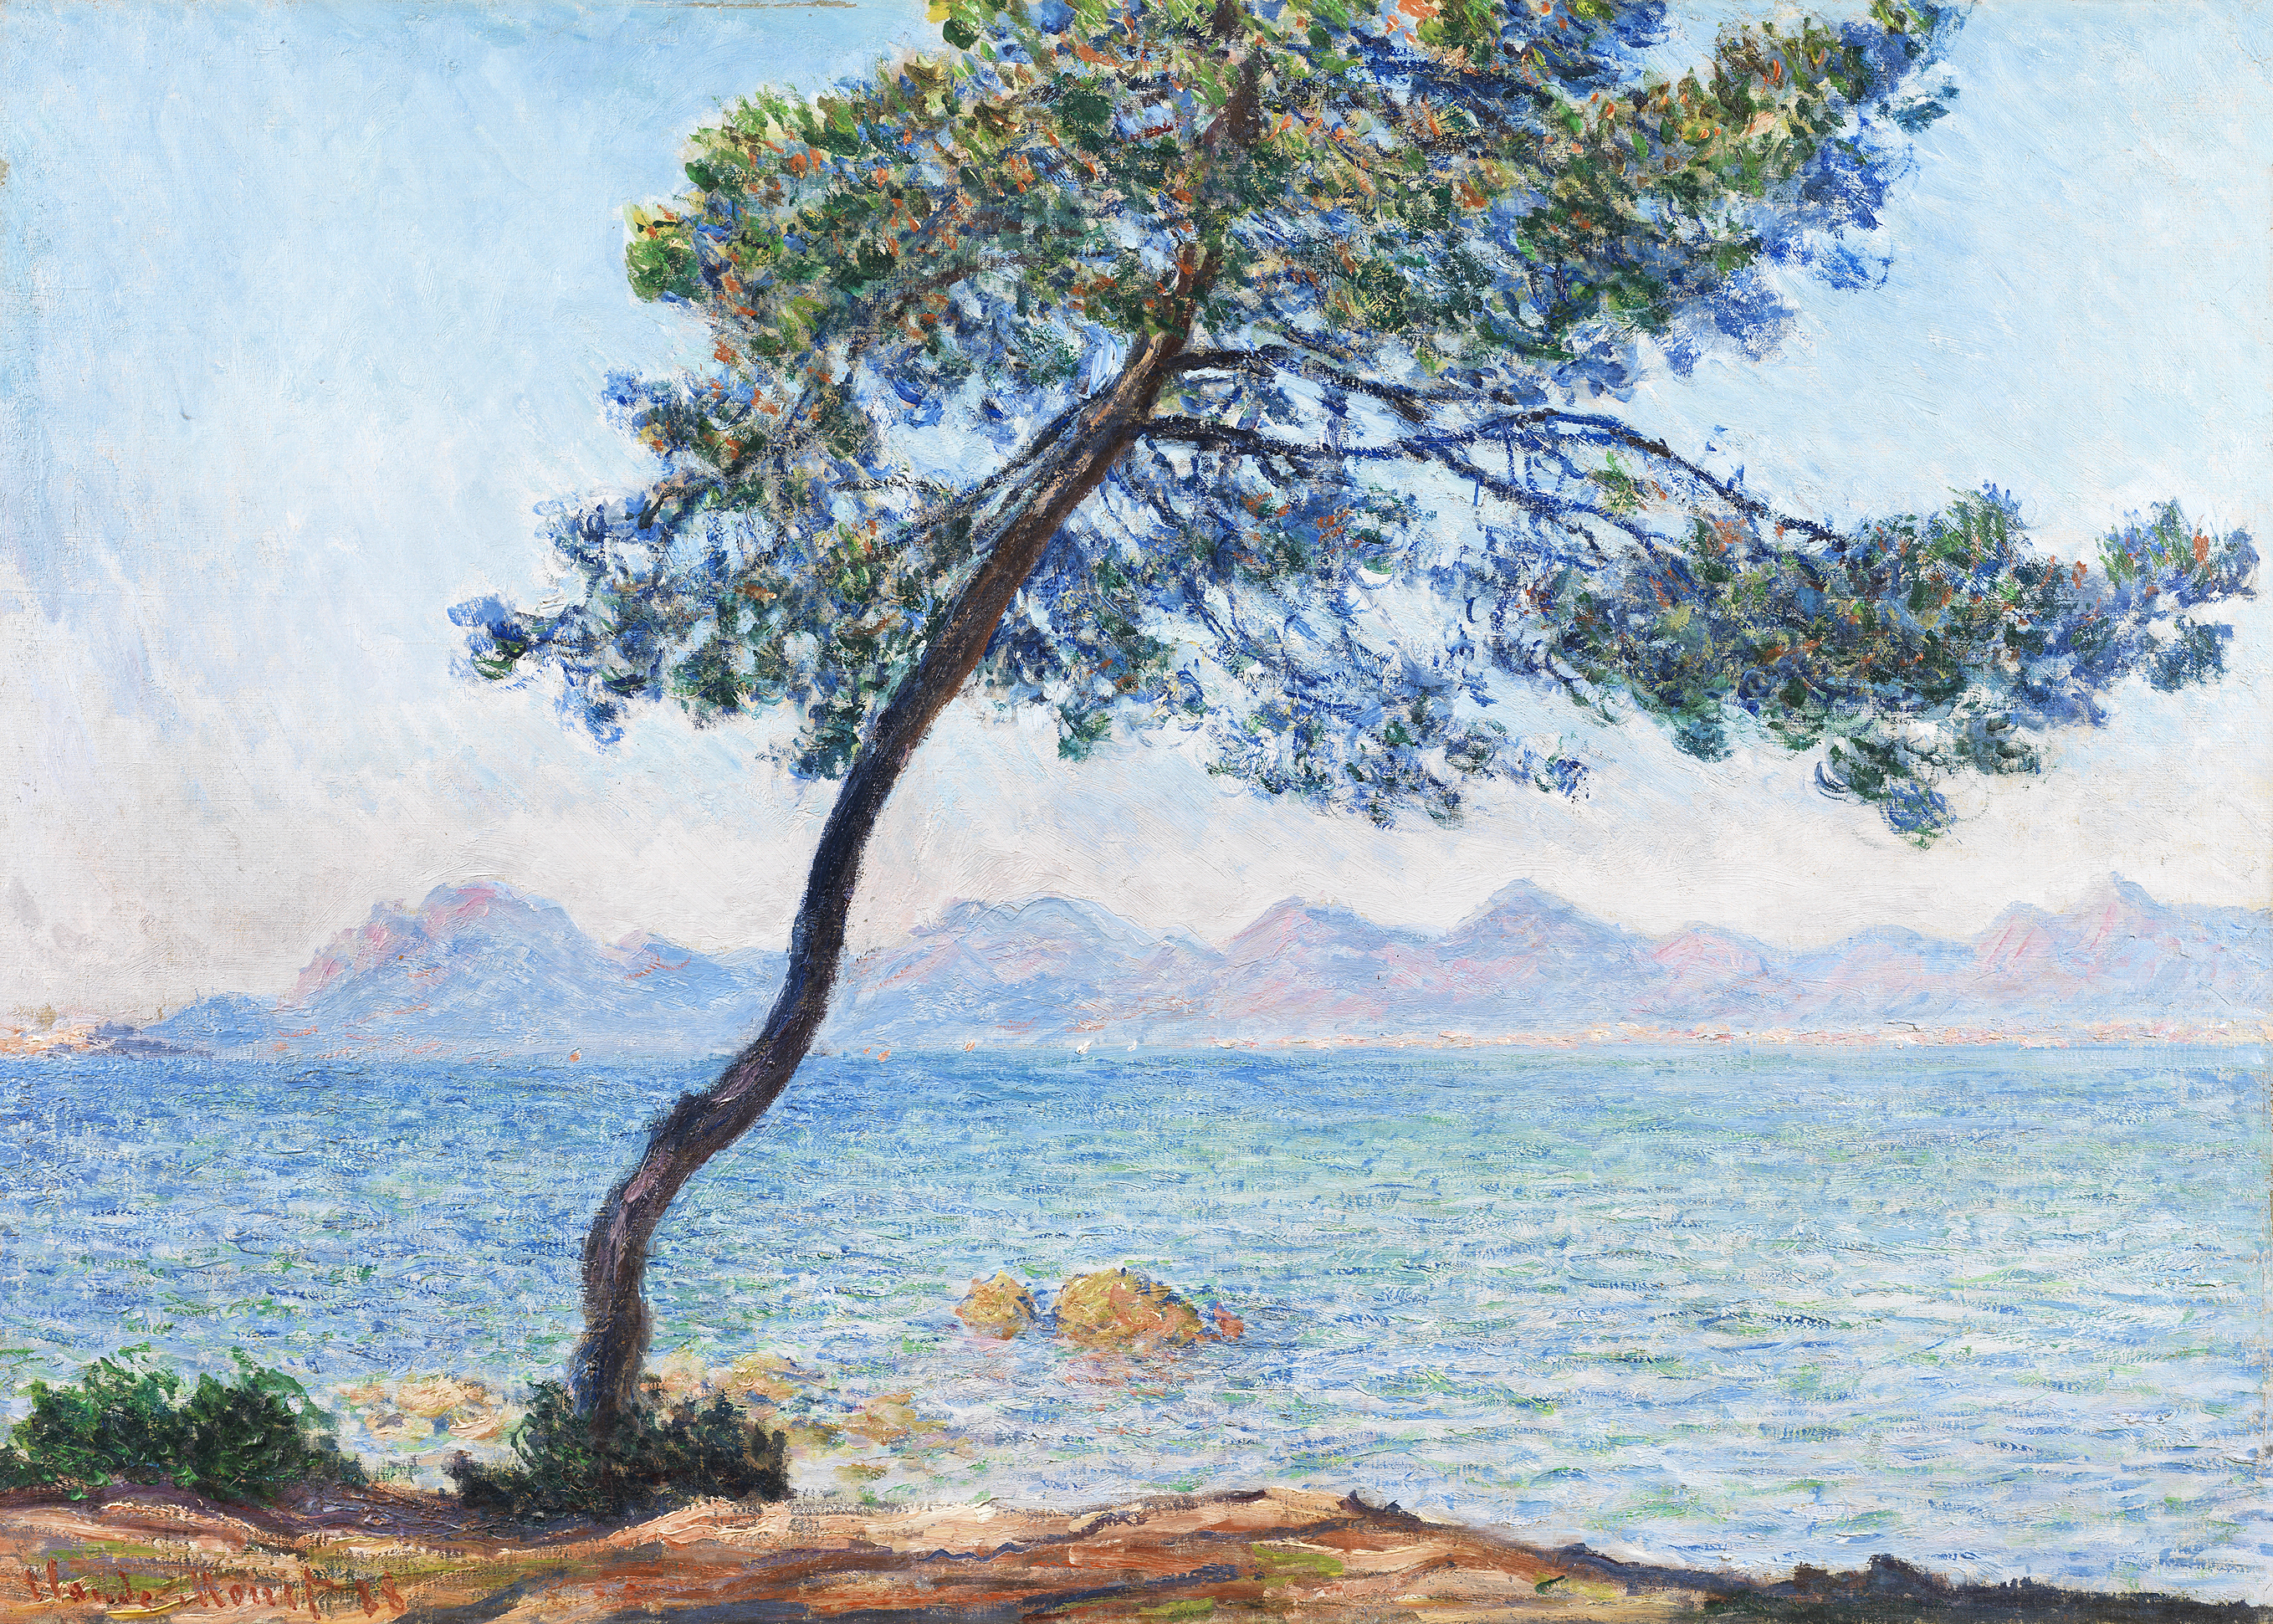 Antibes - Claude Monet, 1888